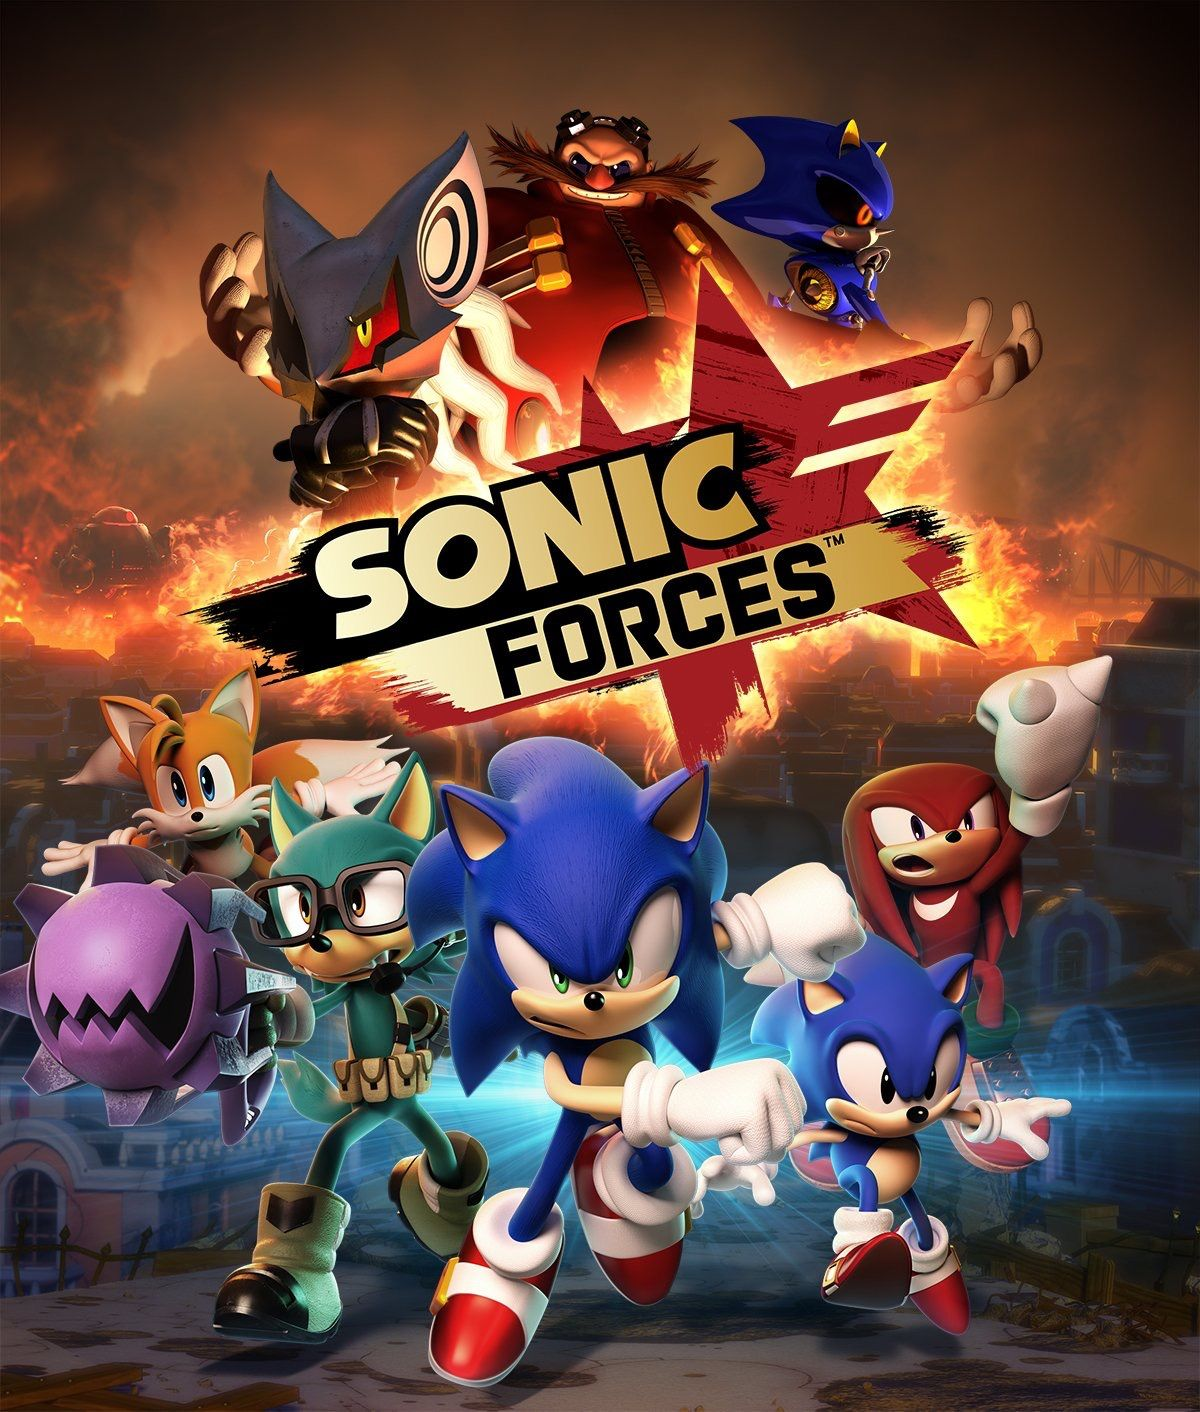 Clean Sonic Forces key art with clearer look at new unknown villain (also provided by Sega)